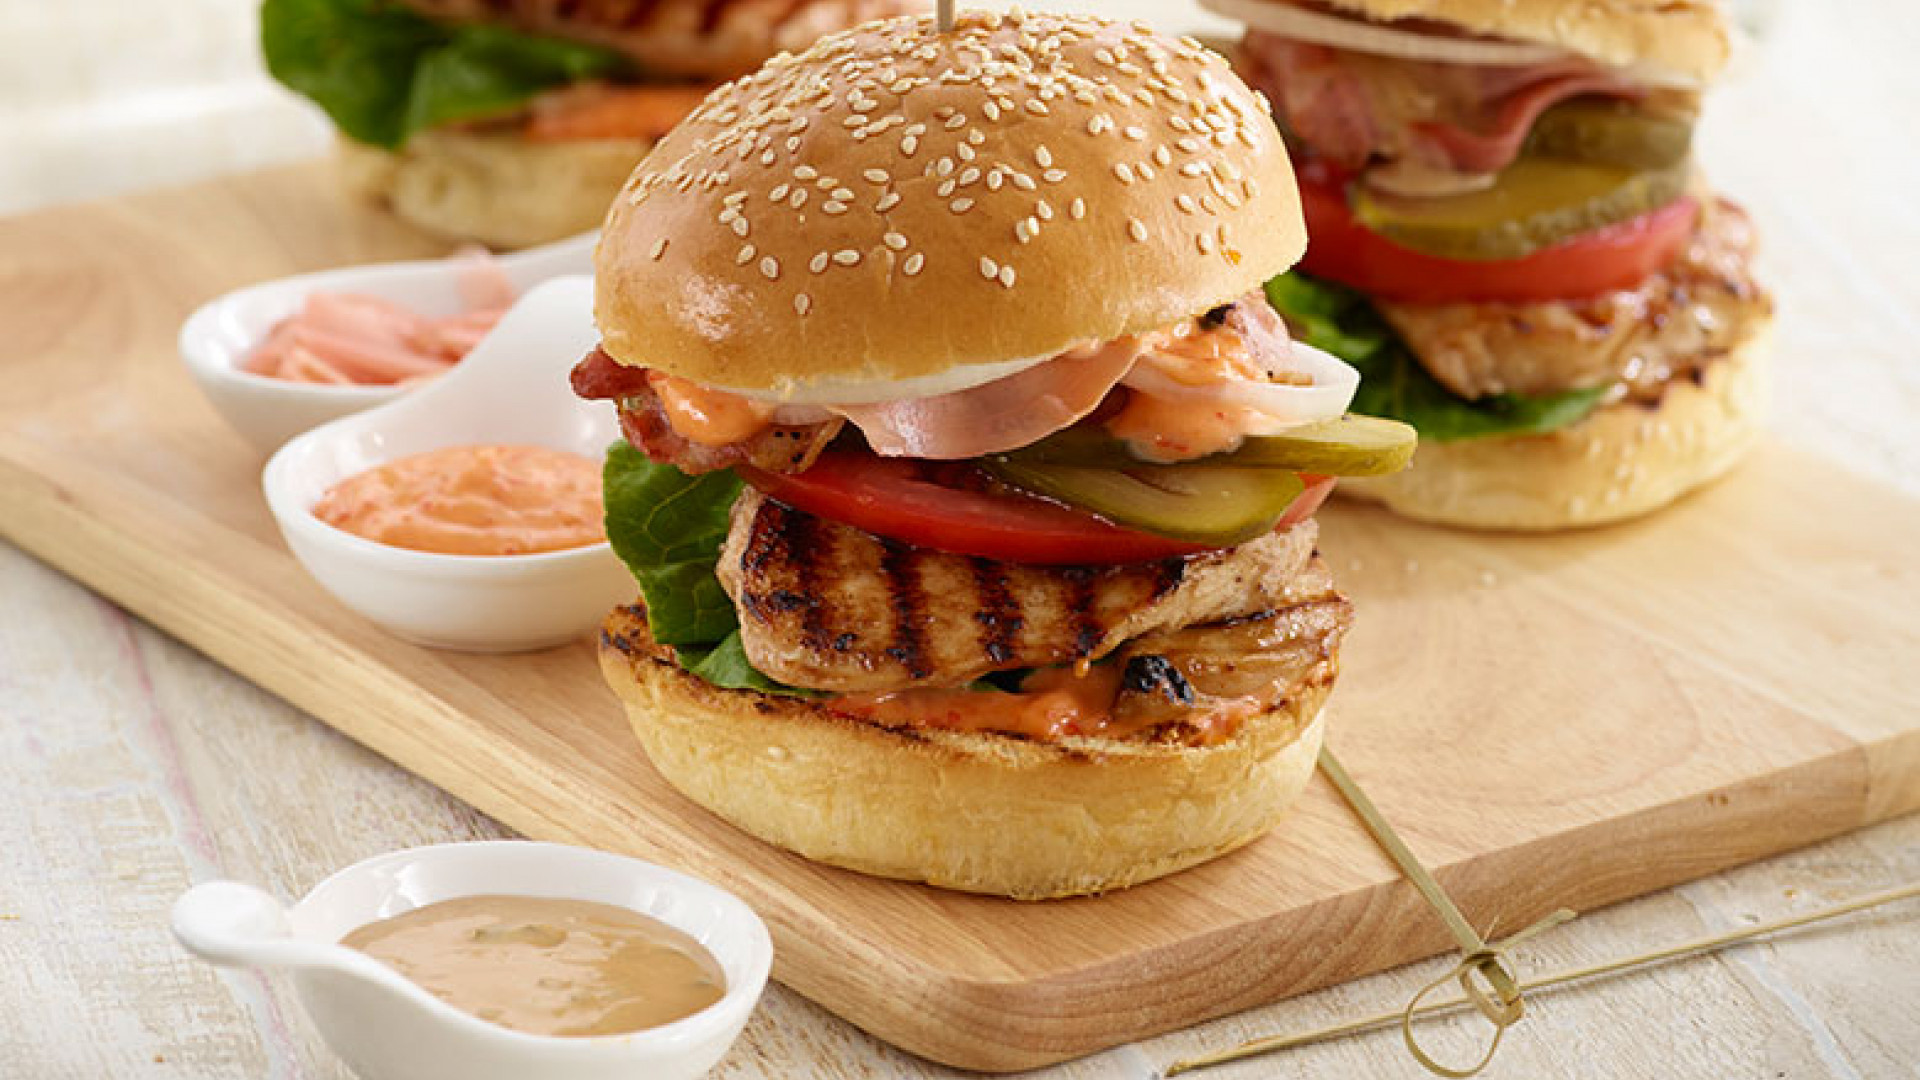 Chicken burger with oyster sauce marinade and teriyaki mayonnaise